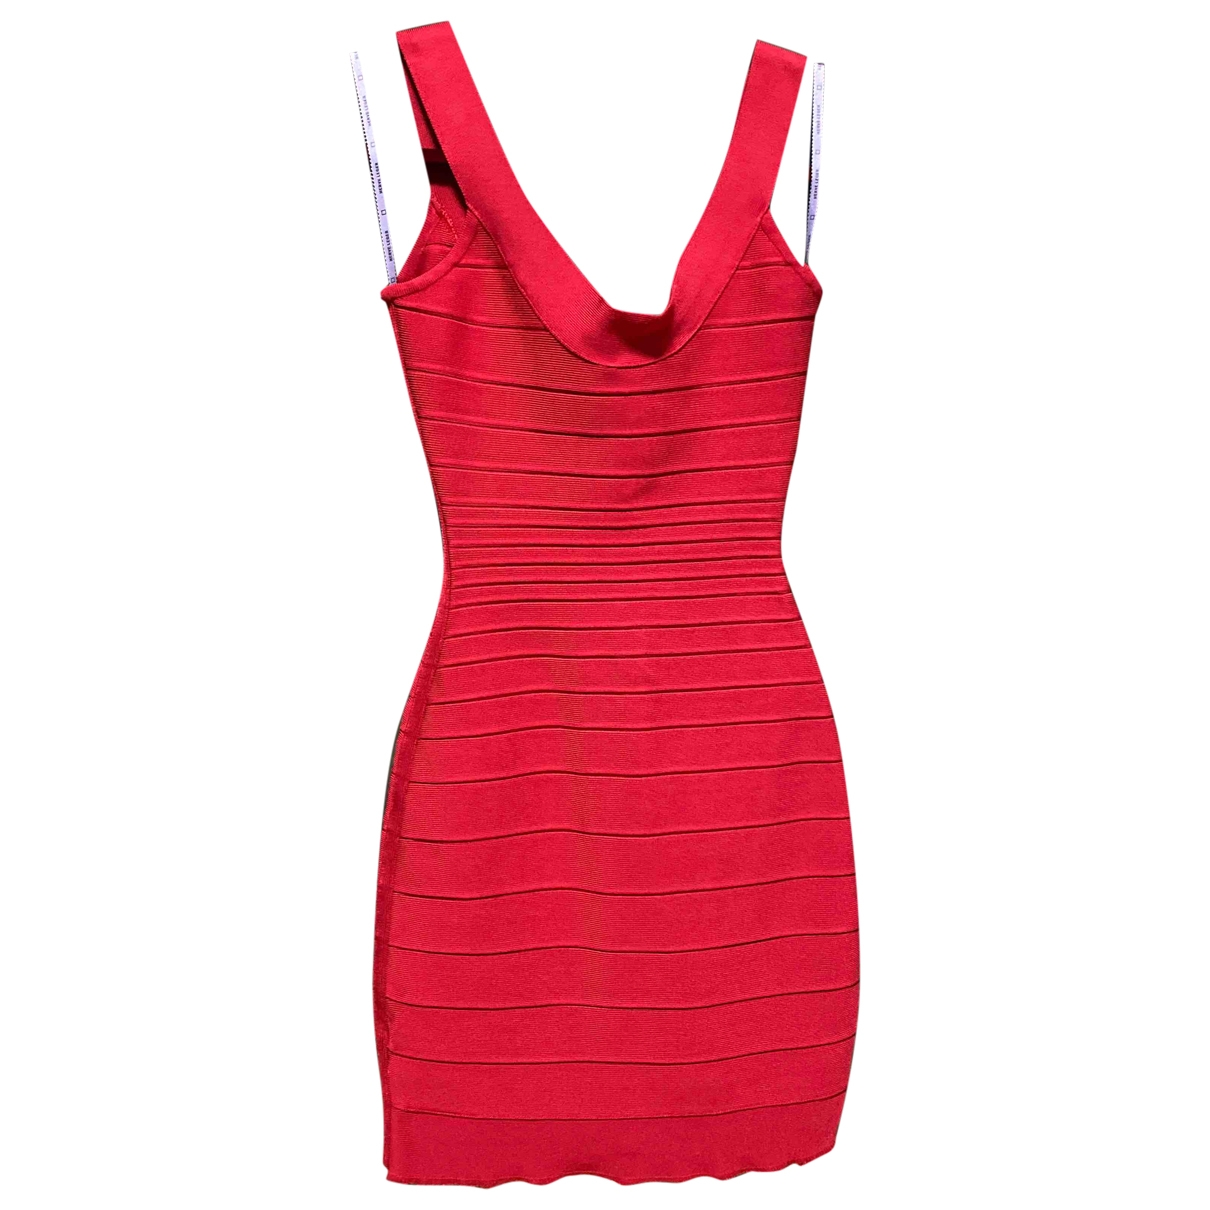 Herve Leger \N Kleid in  Rot Synthetik